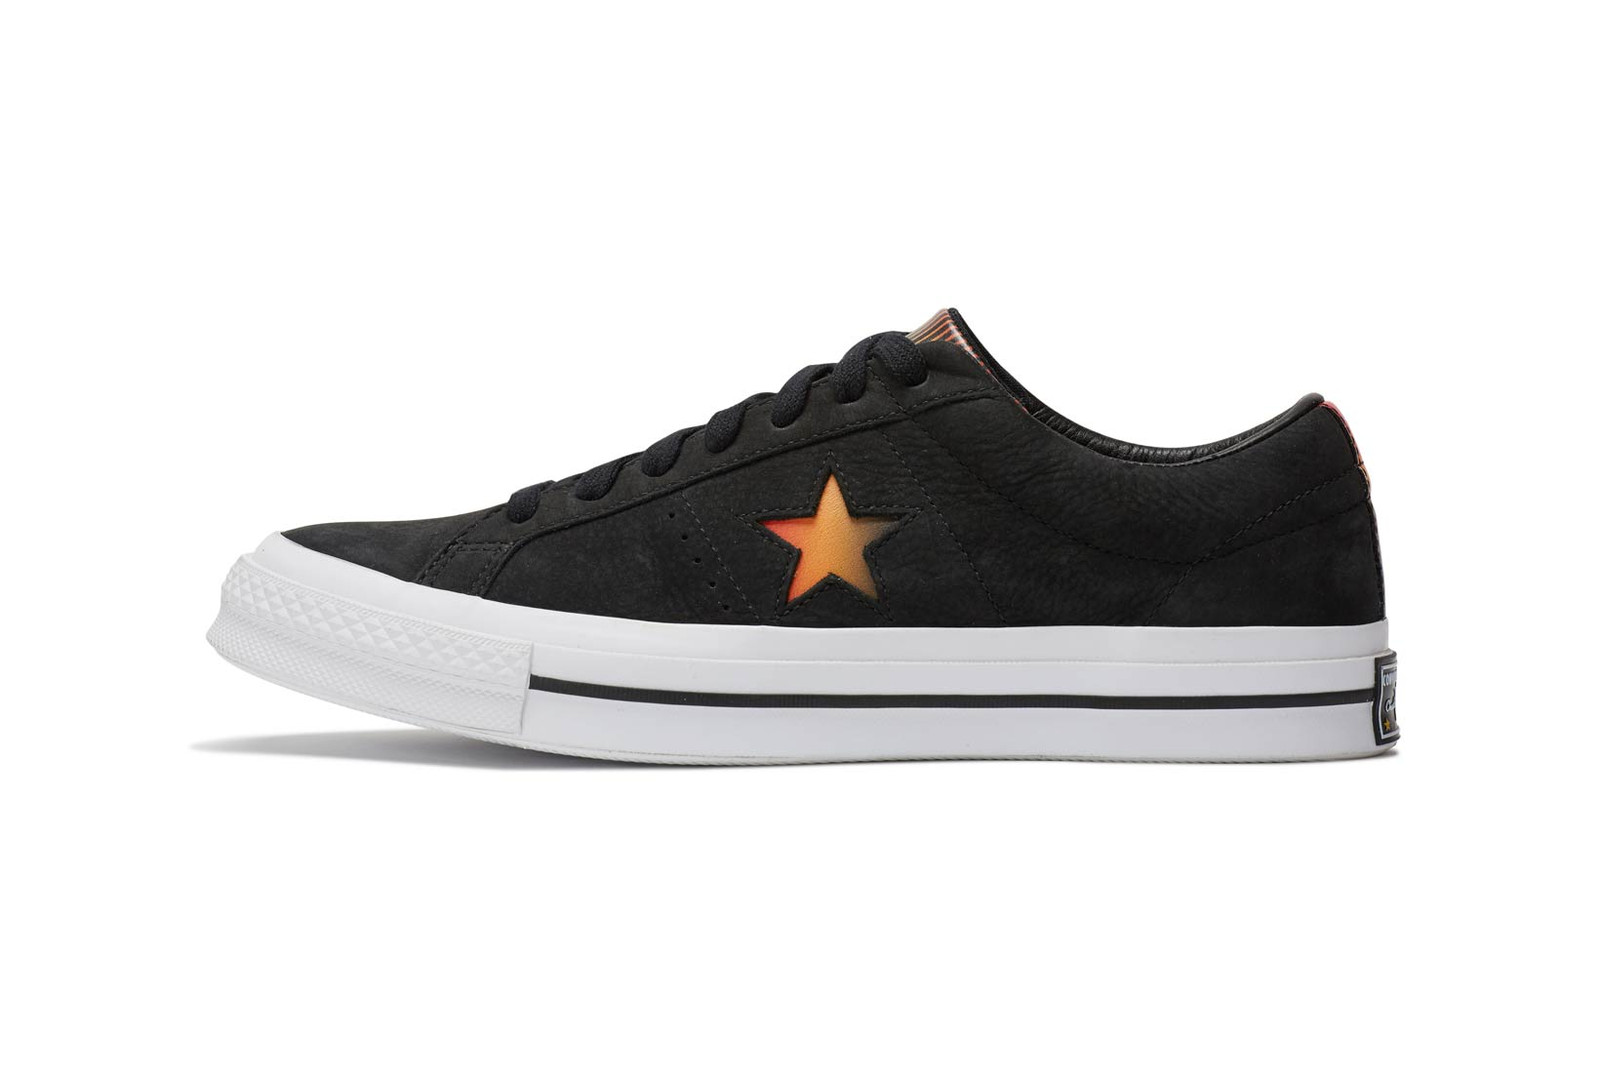 Converse Year of the Dog One Star Solar Pack Collection